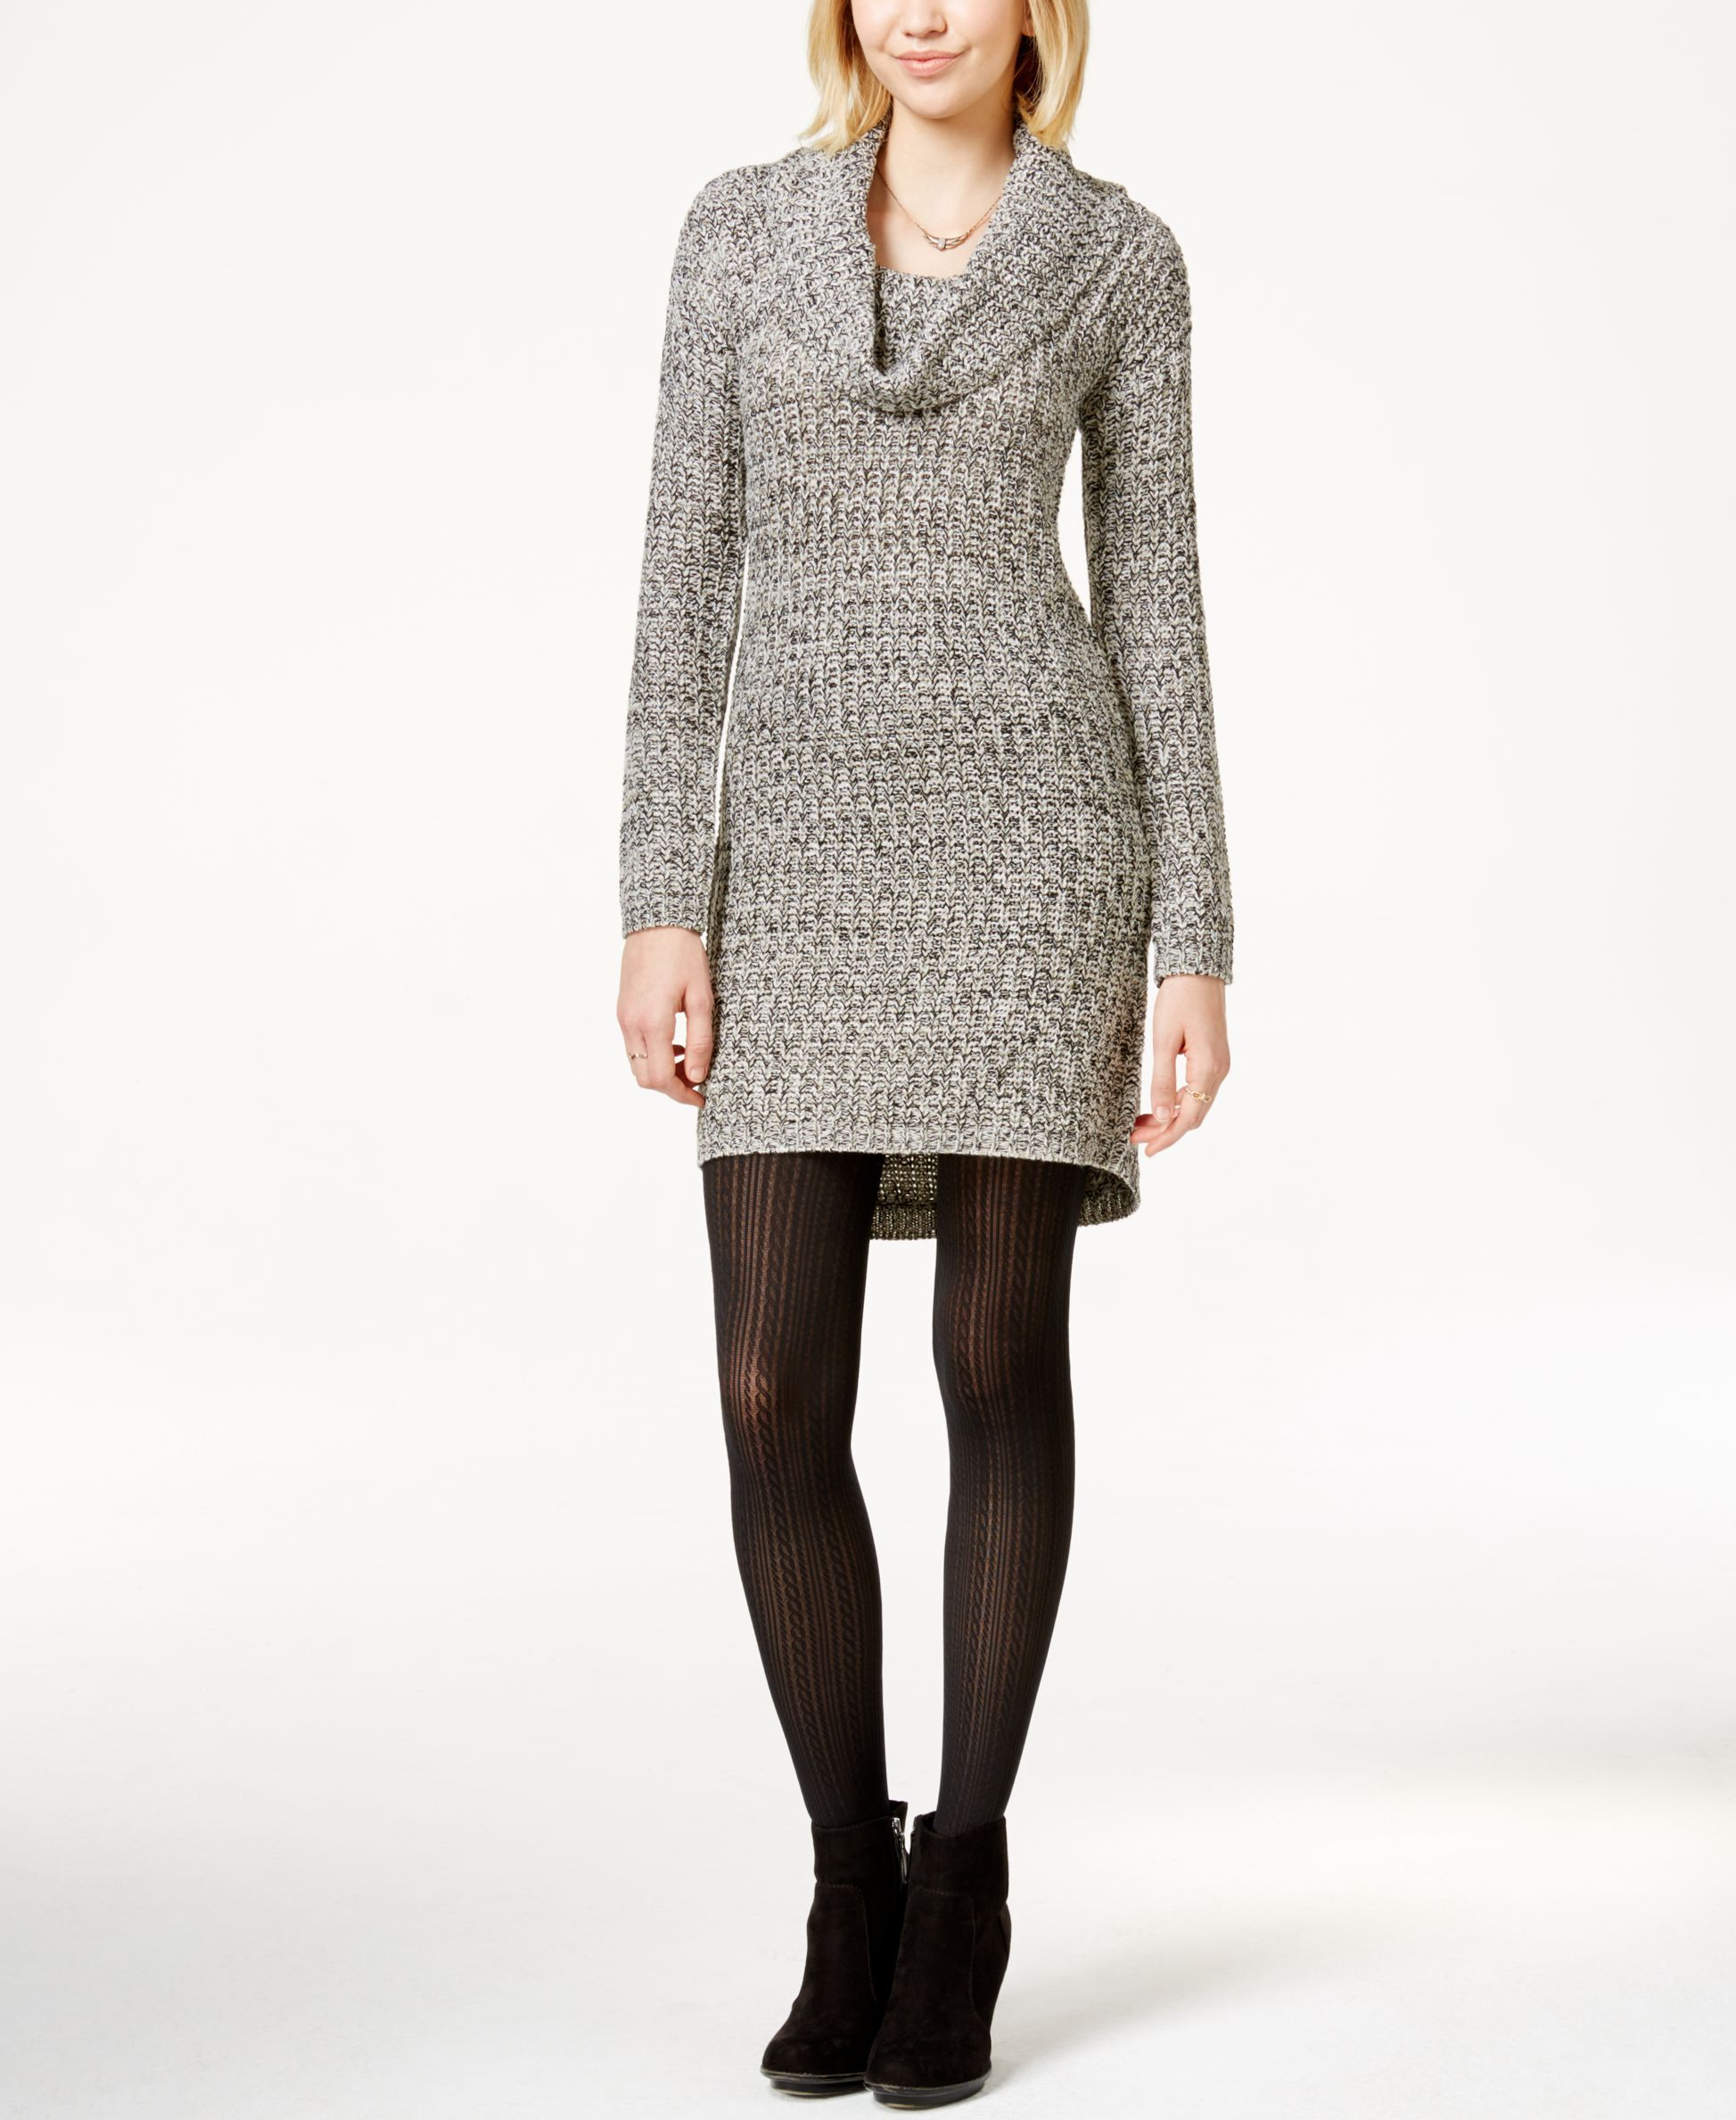 Ultra Flirt Juniors' Marled Cowl-Neck Sweater Dress | Products ...